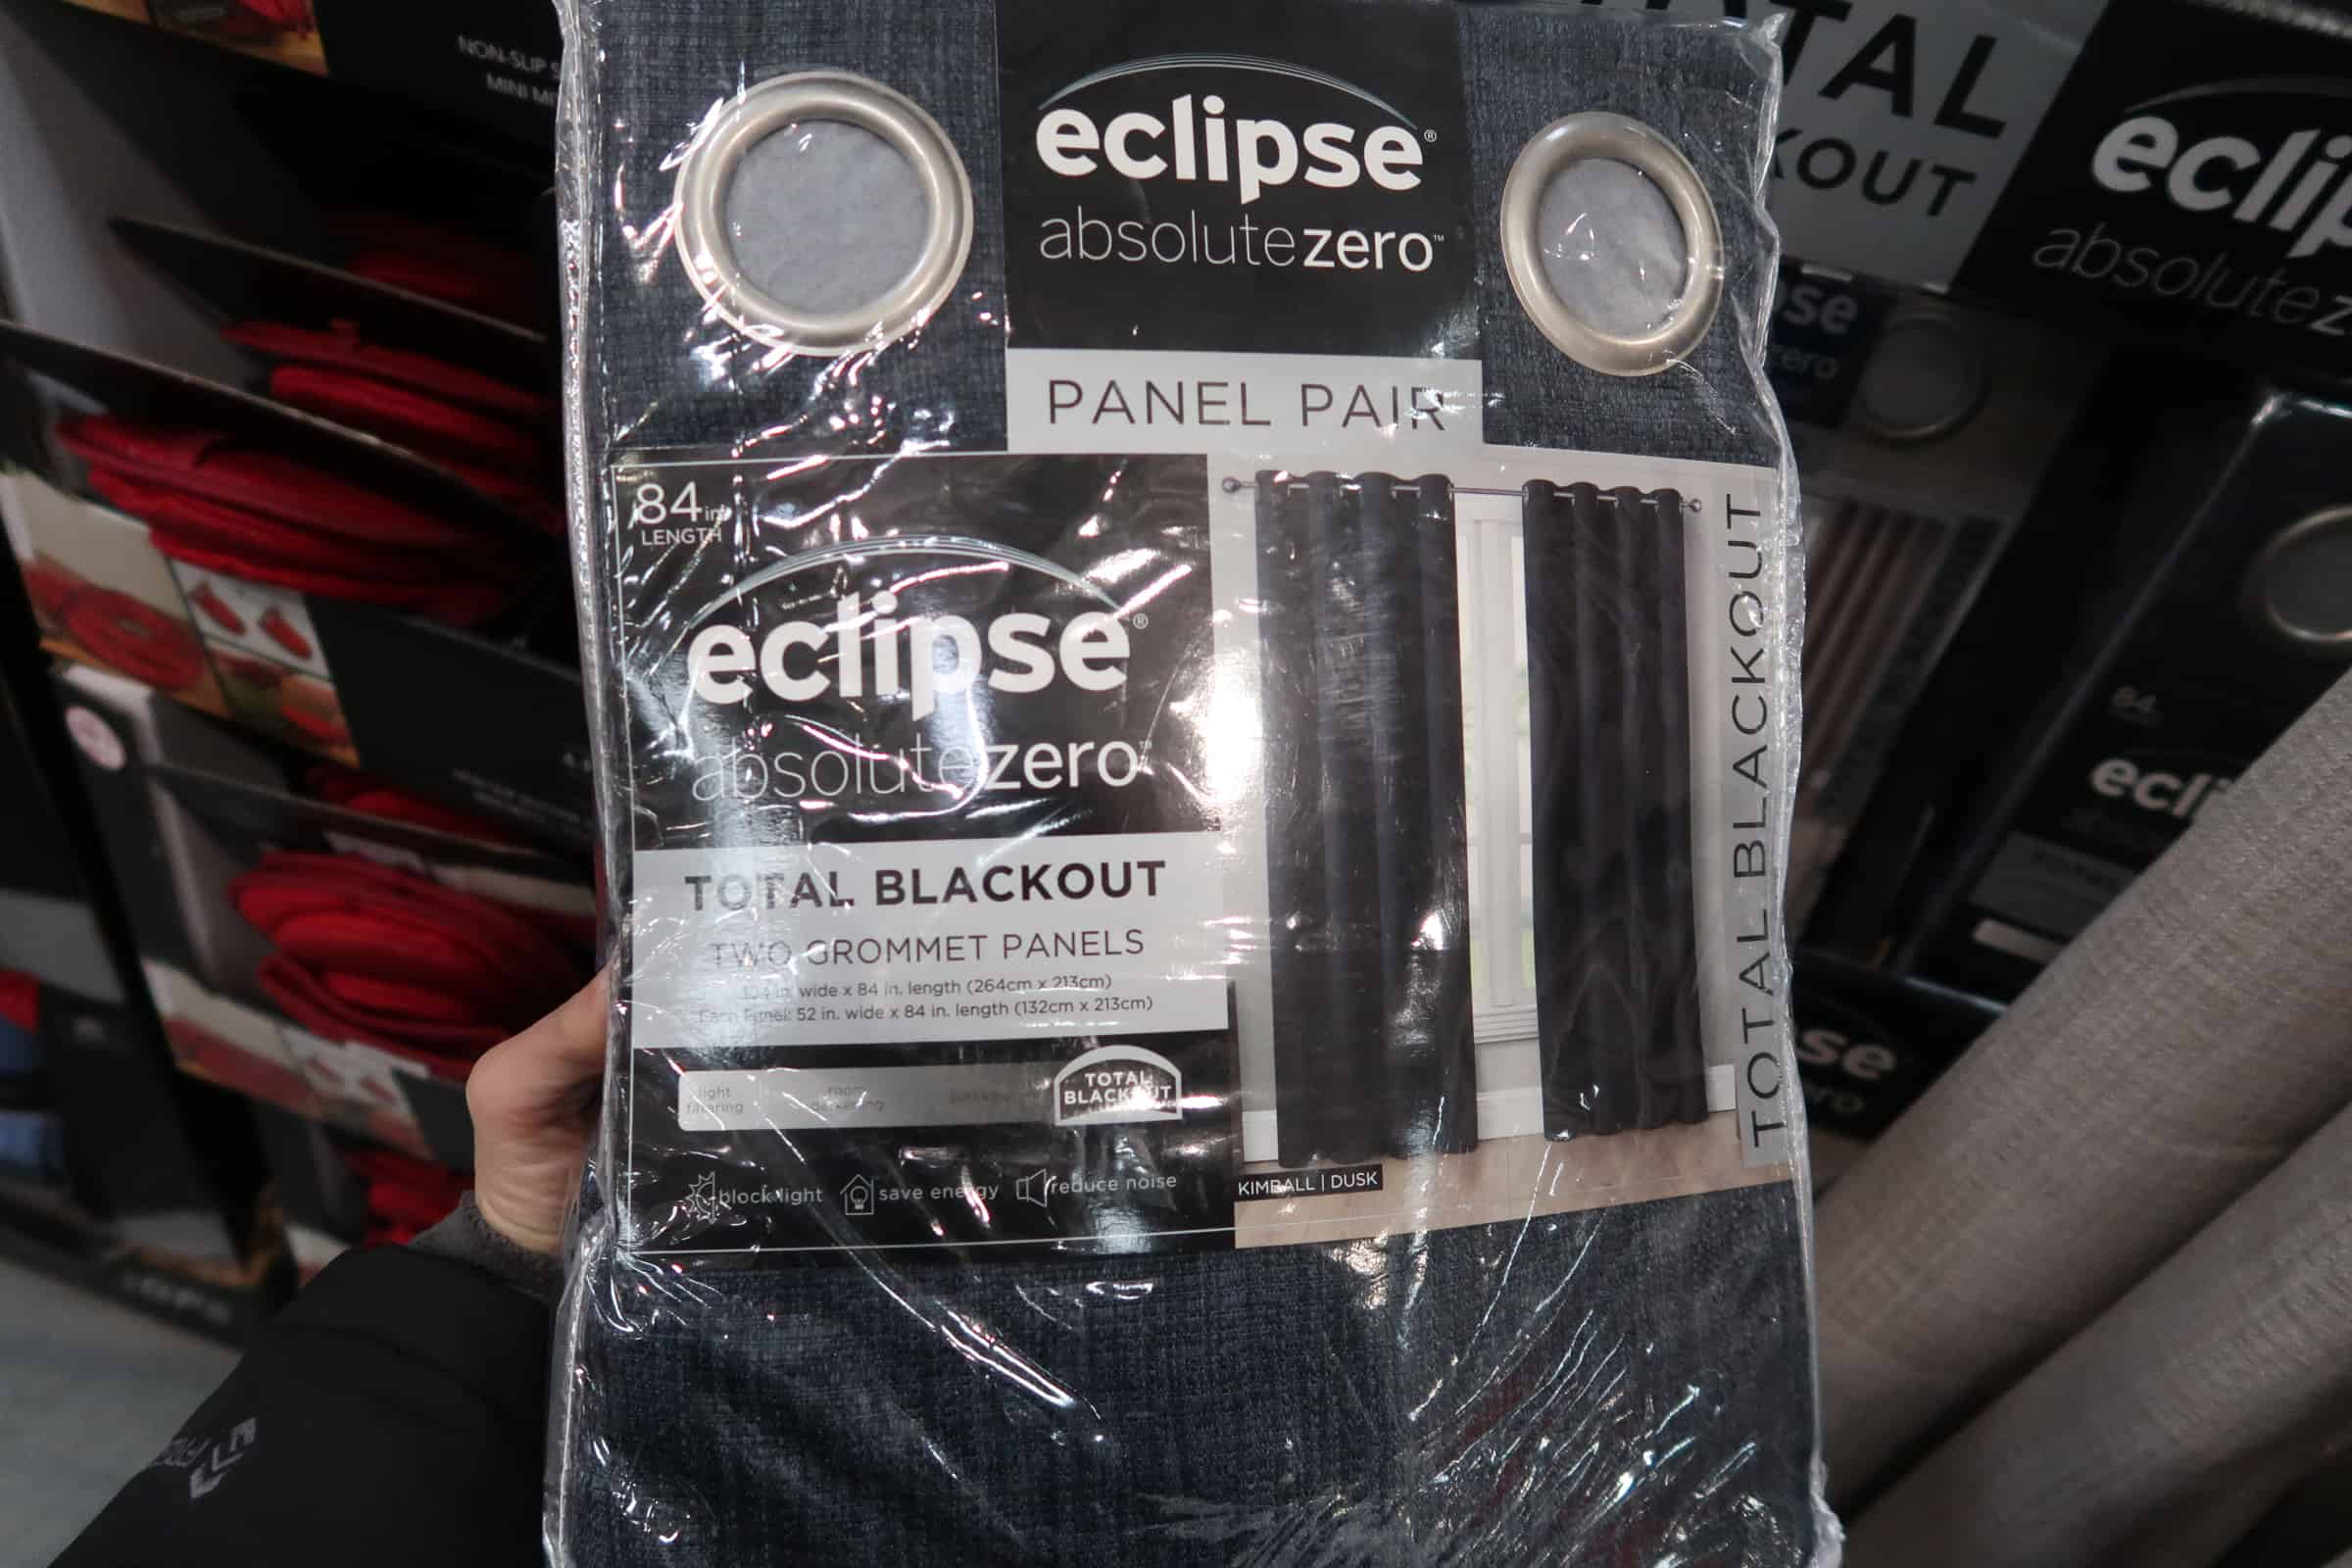 Eclipse Total Blackout Curtains 2 pk. $19.99